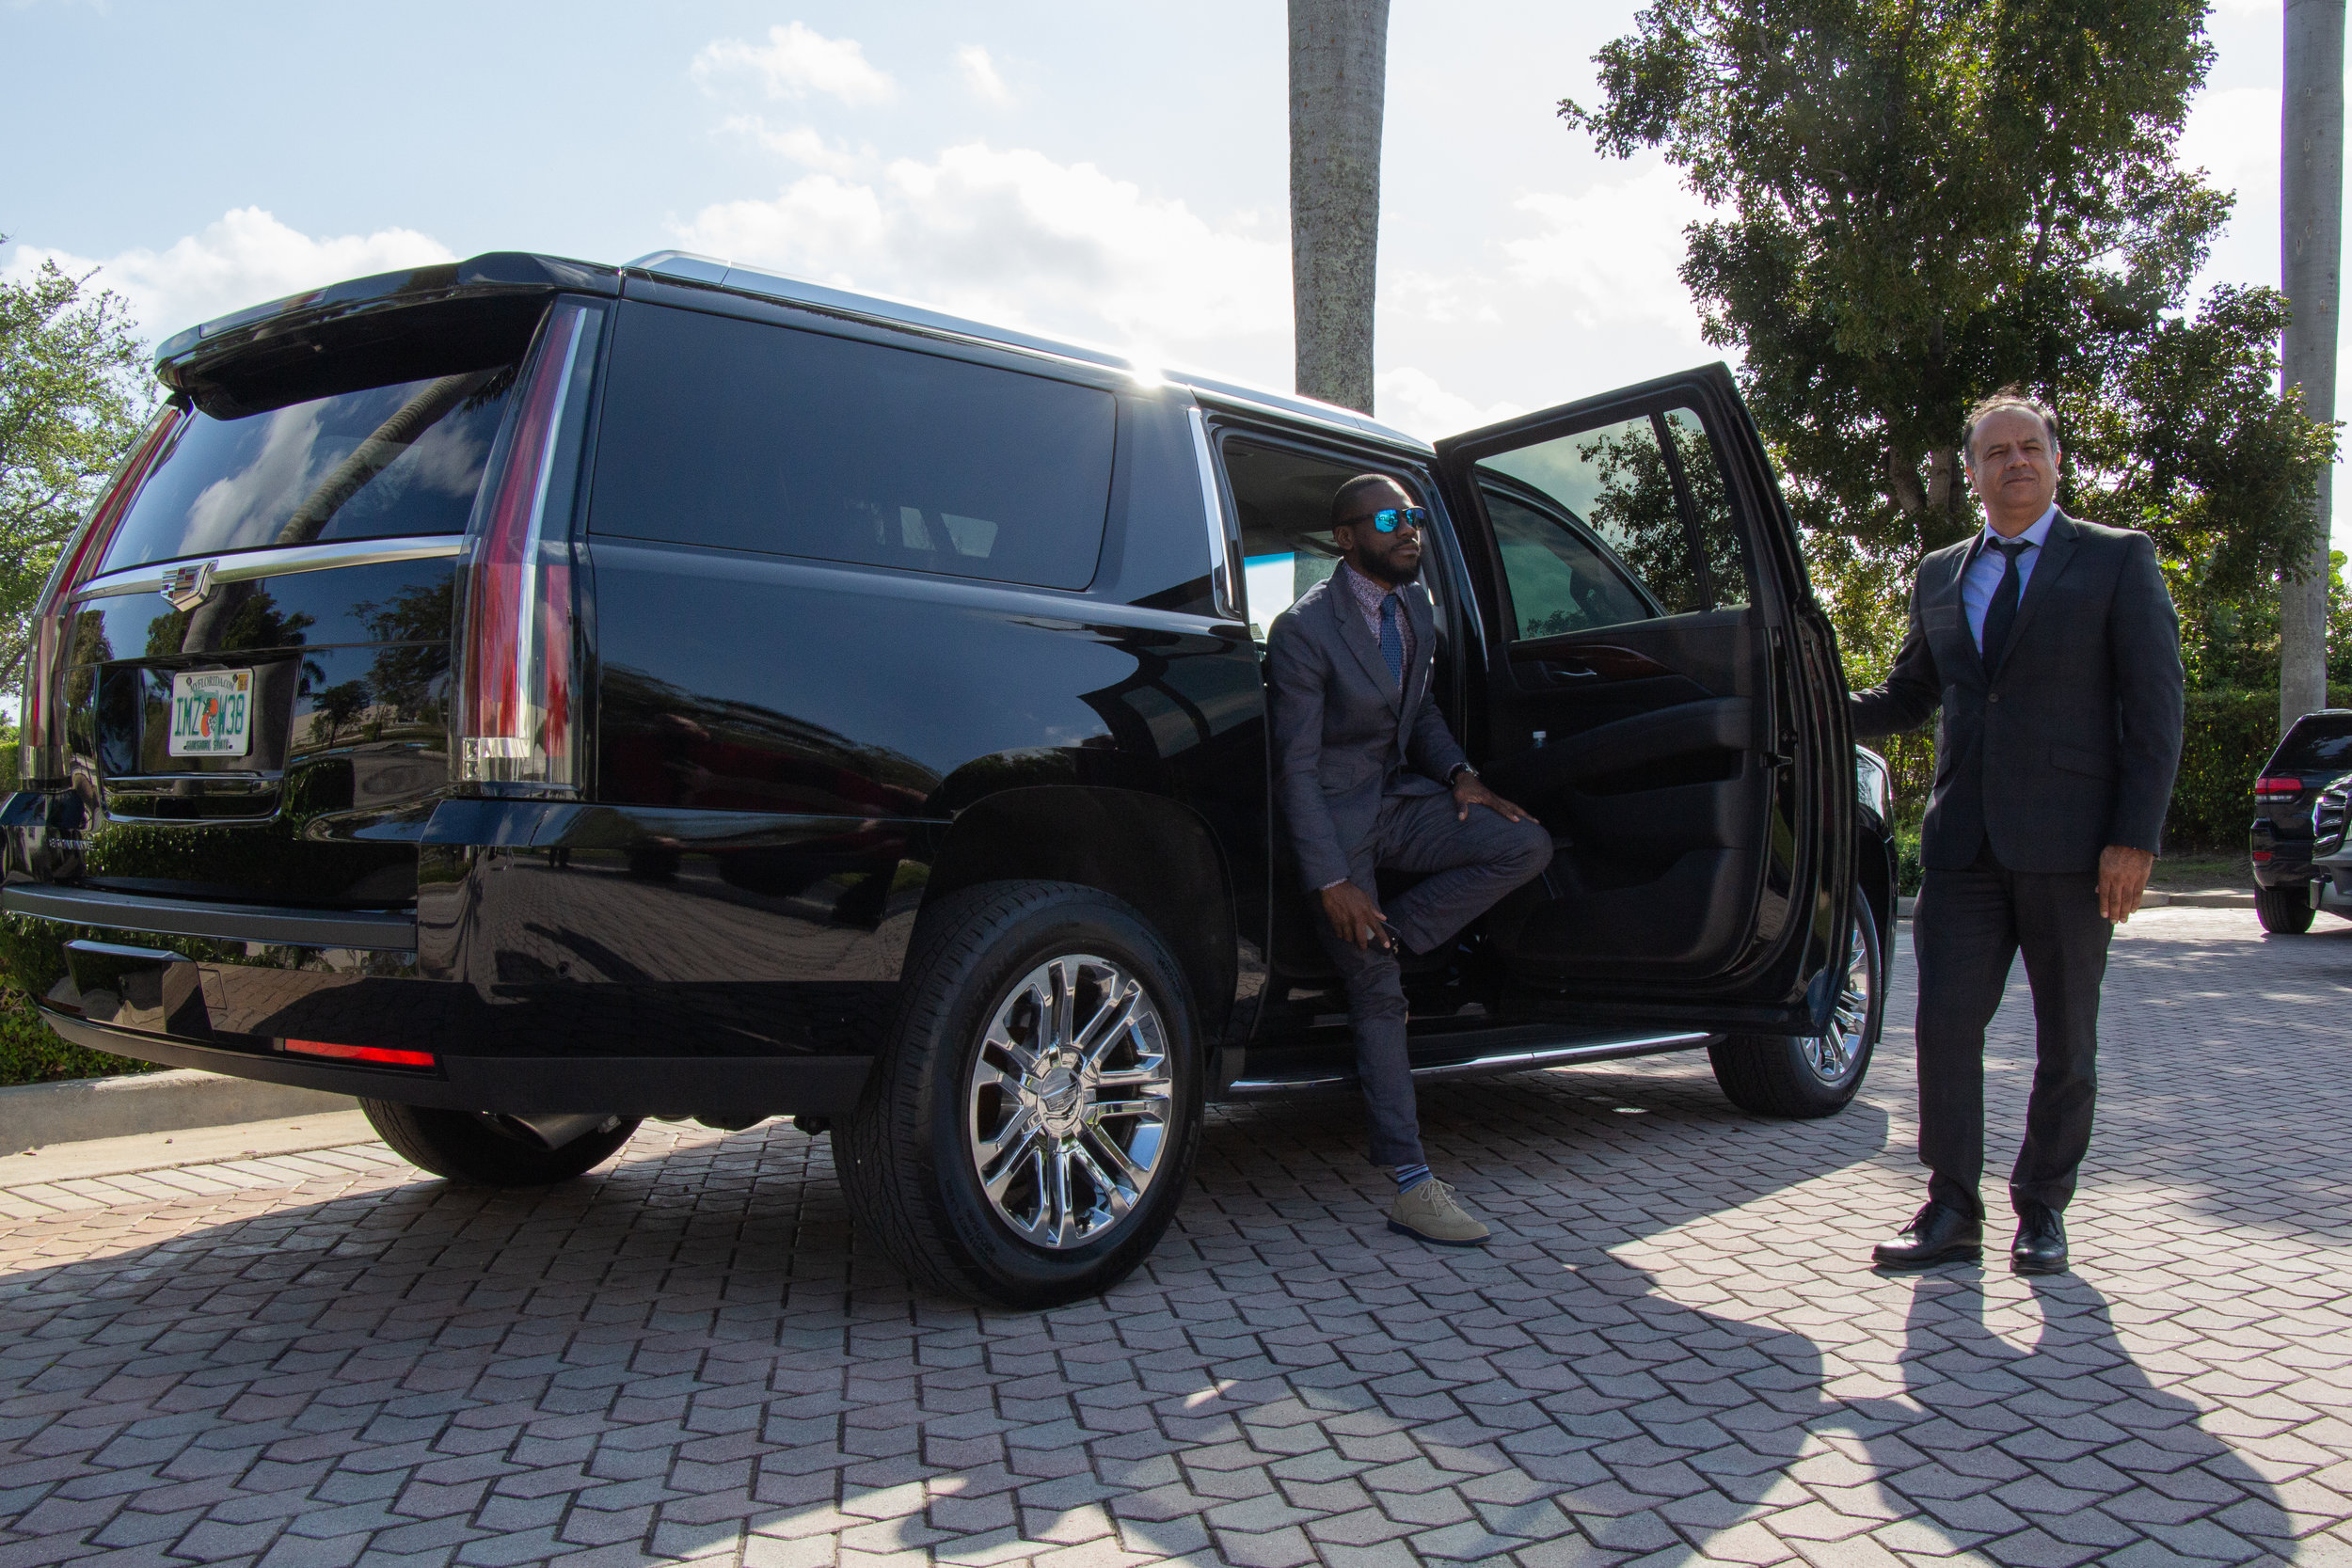 Cadillac Escalade ESV with chauffeur and client